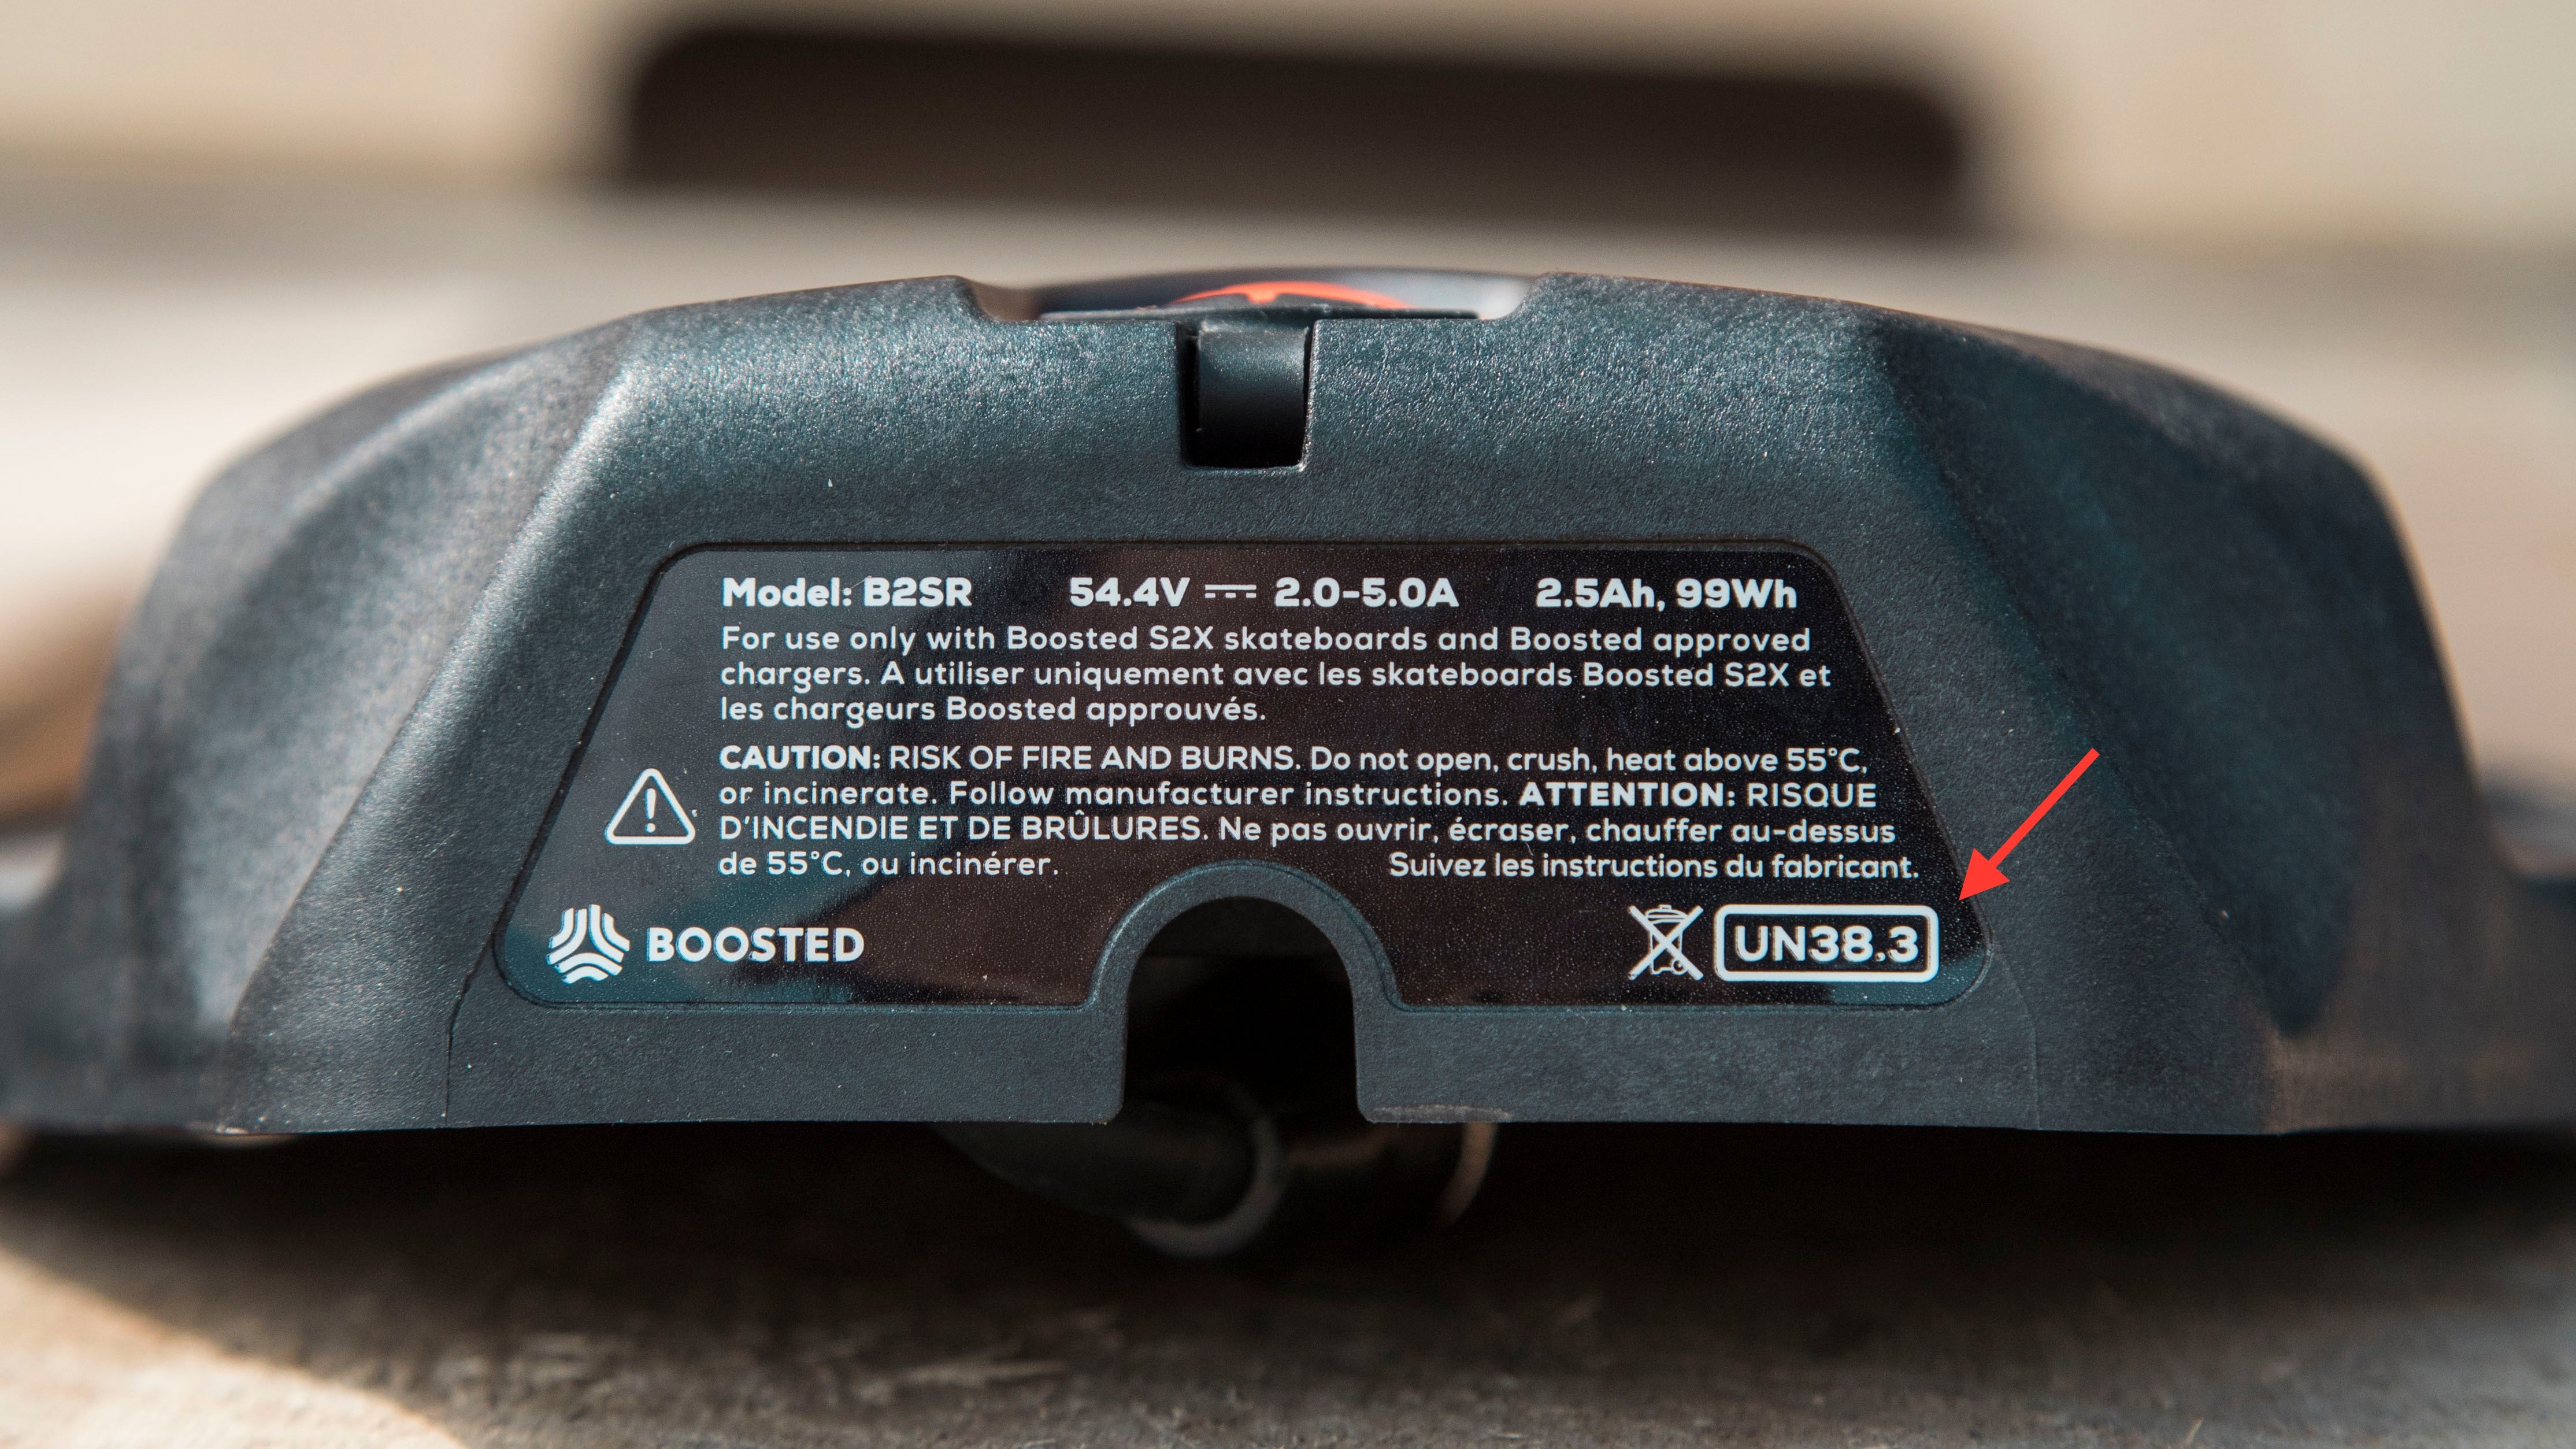 Boosted Boards Standard Range Battery